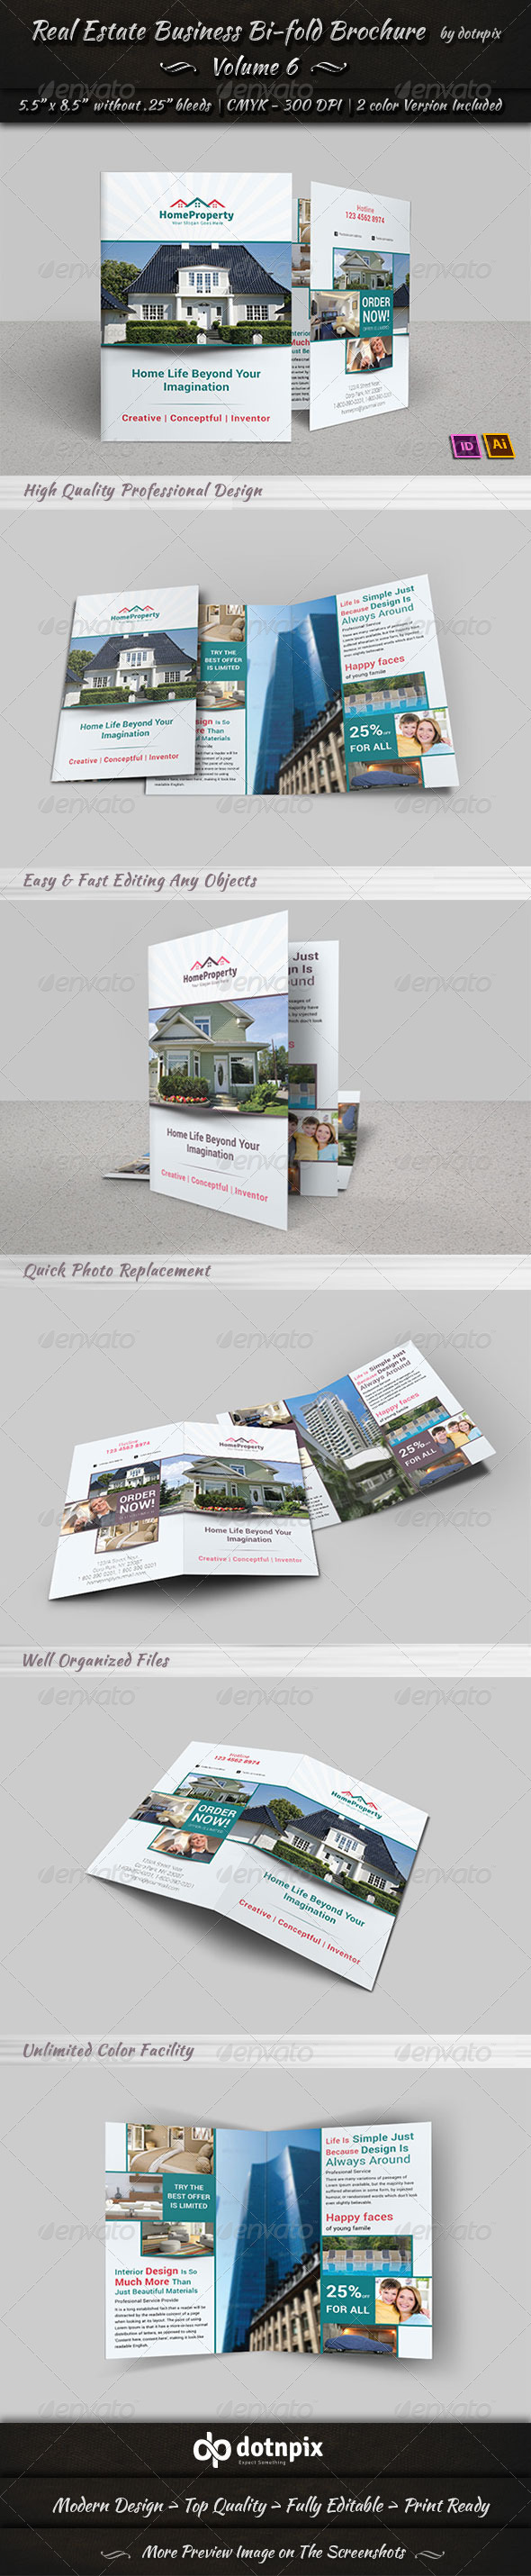 GraphicRiver Real Estate Business Bi-Fold Brochure Volume 6 6723730